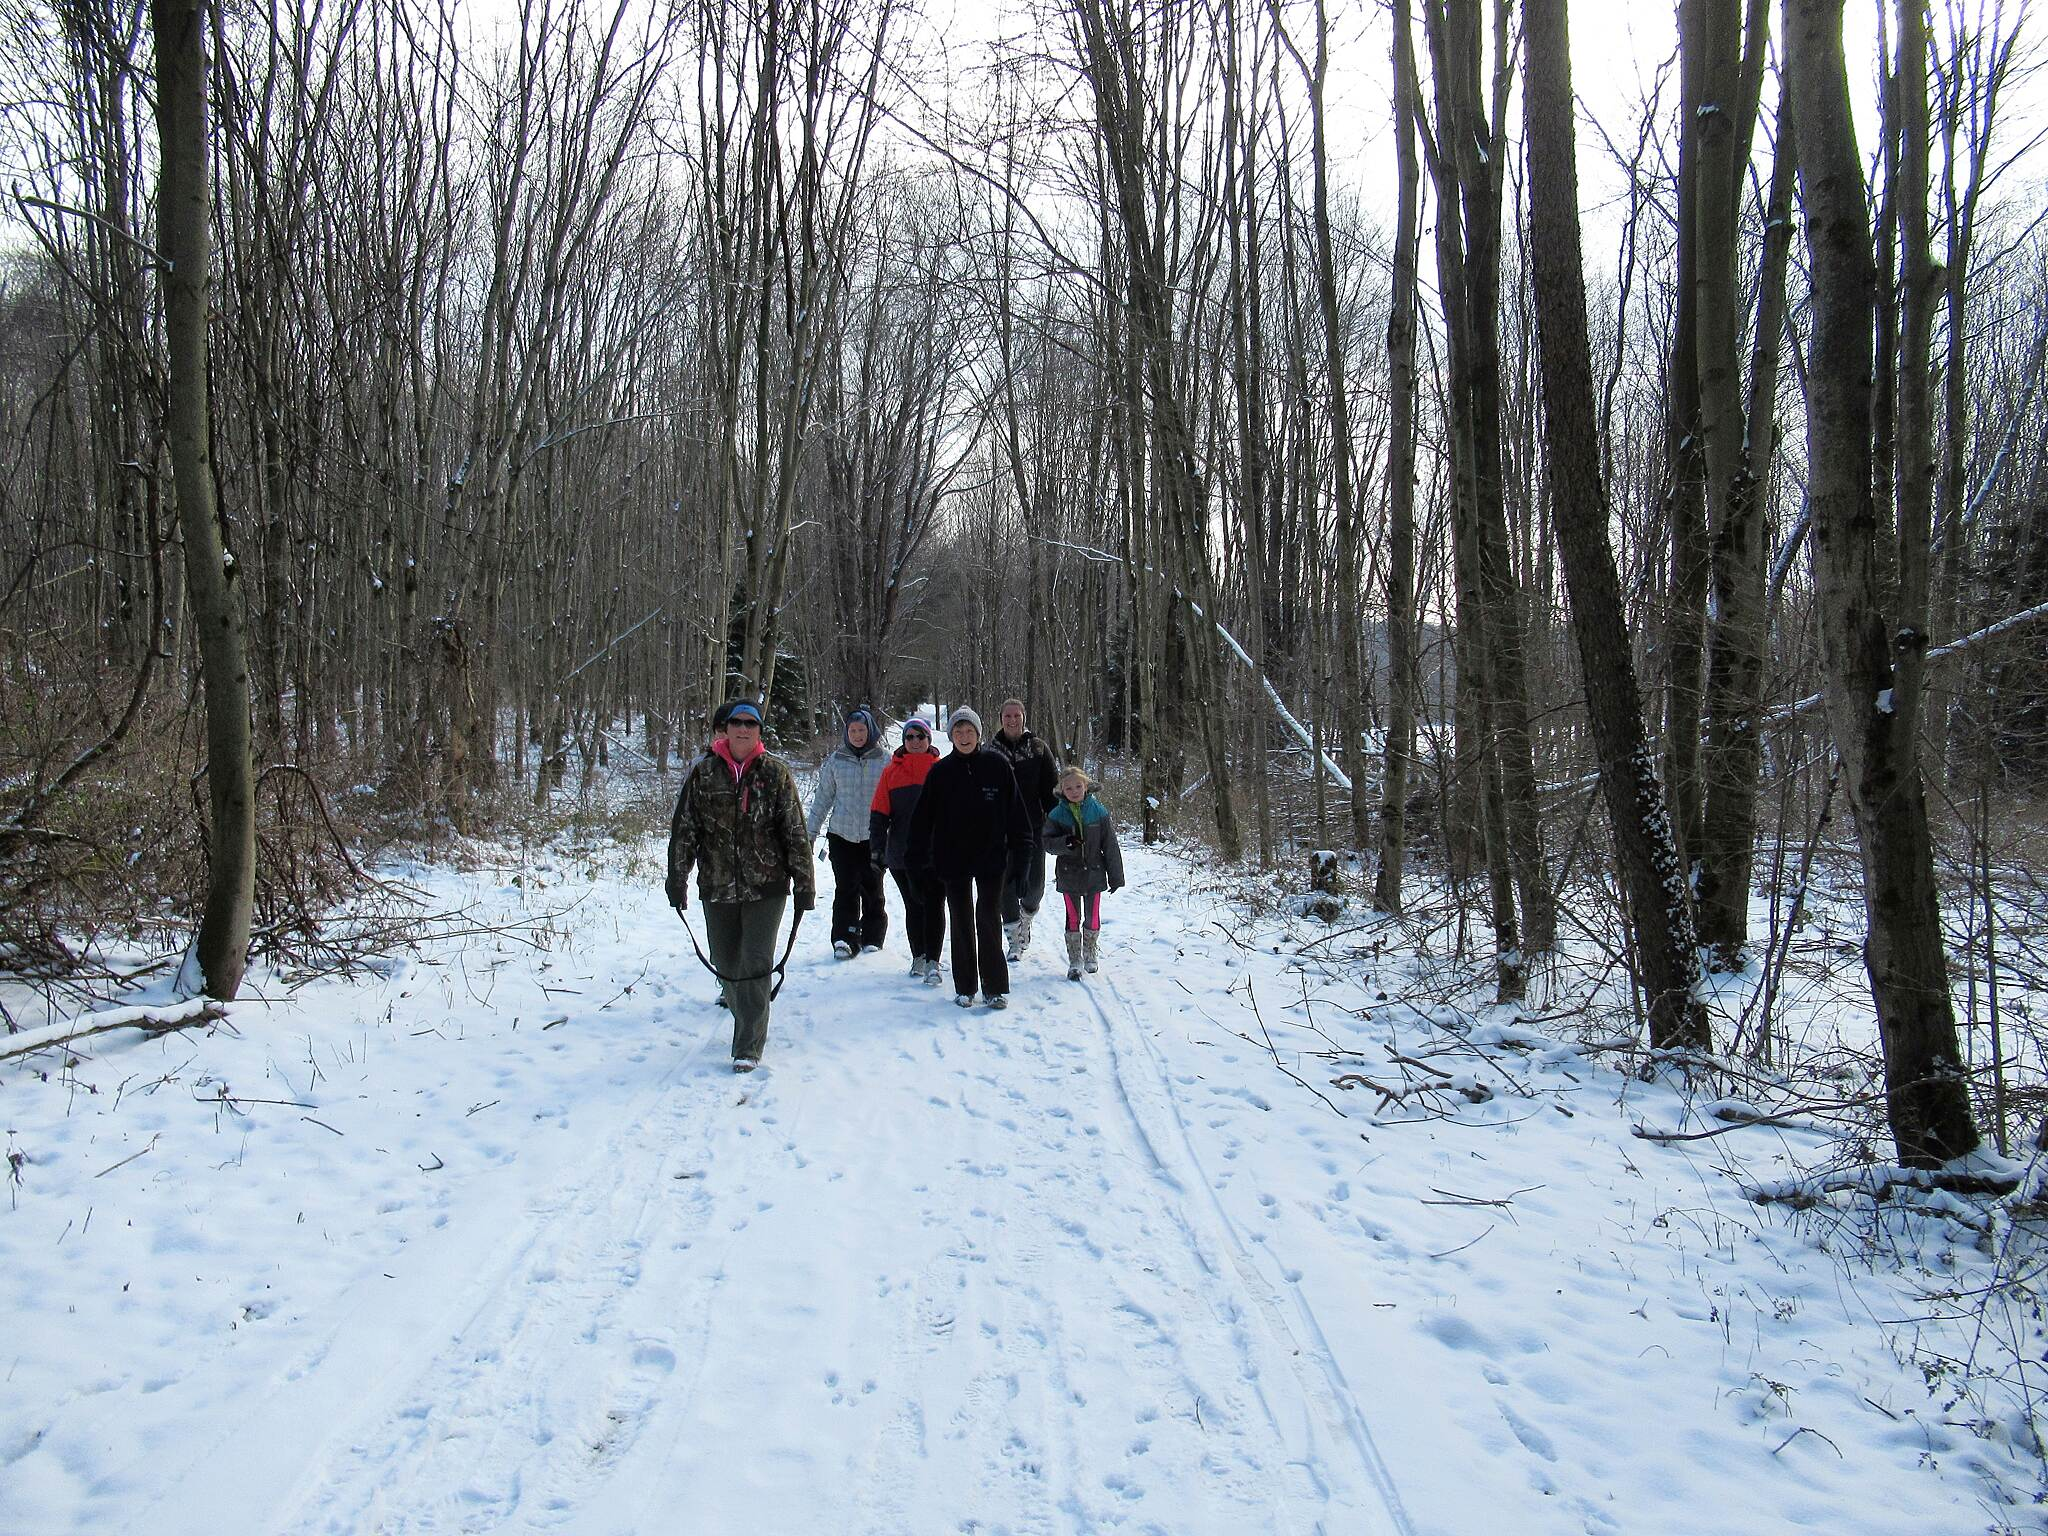 John C. Oliver Multi-Purpose Loop Trail Walkers along the trail-January 2019 A group takes in a Sunday afternoon walk on the newly fallen snow.  January, 2019.